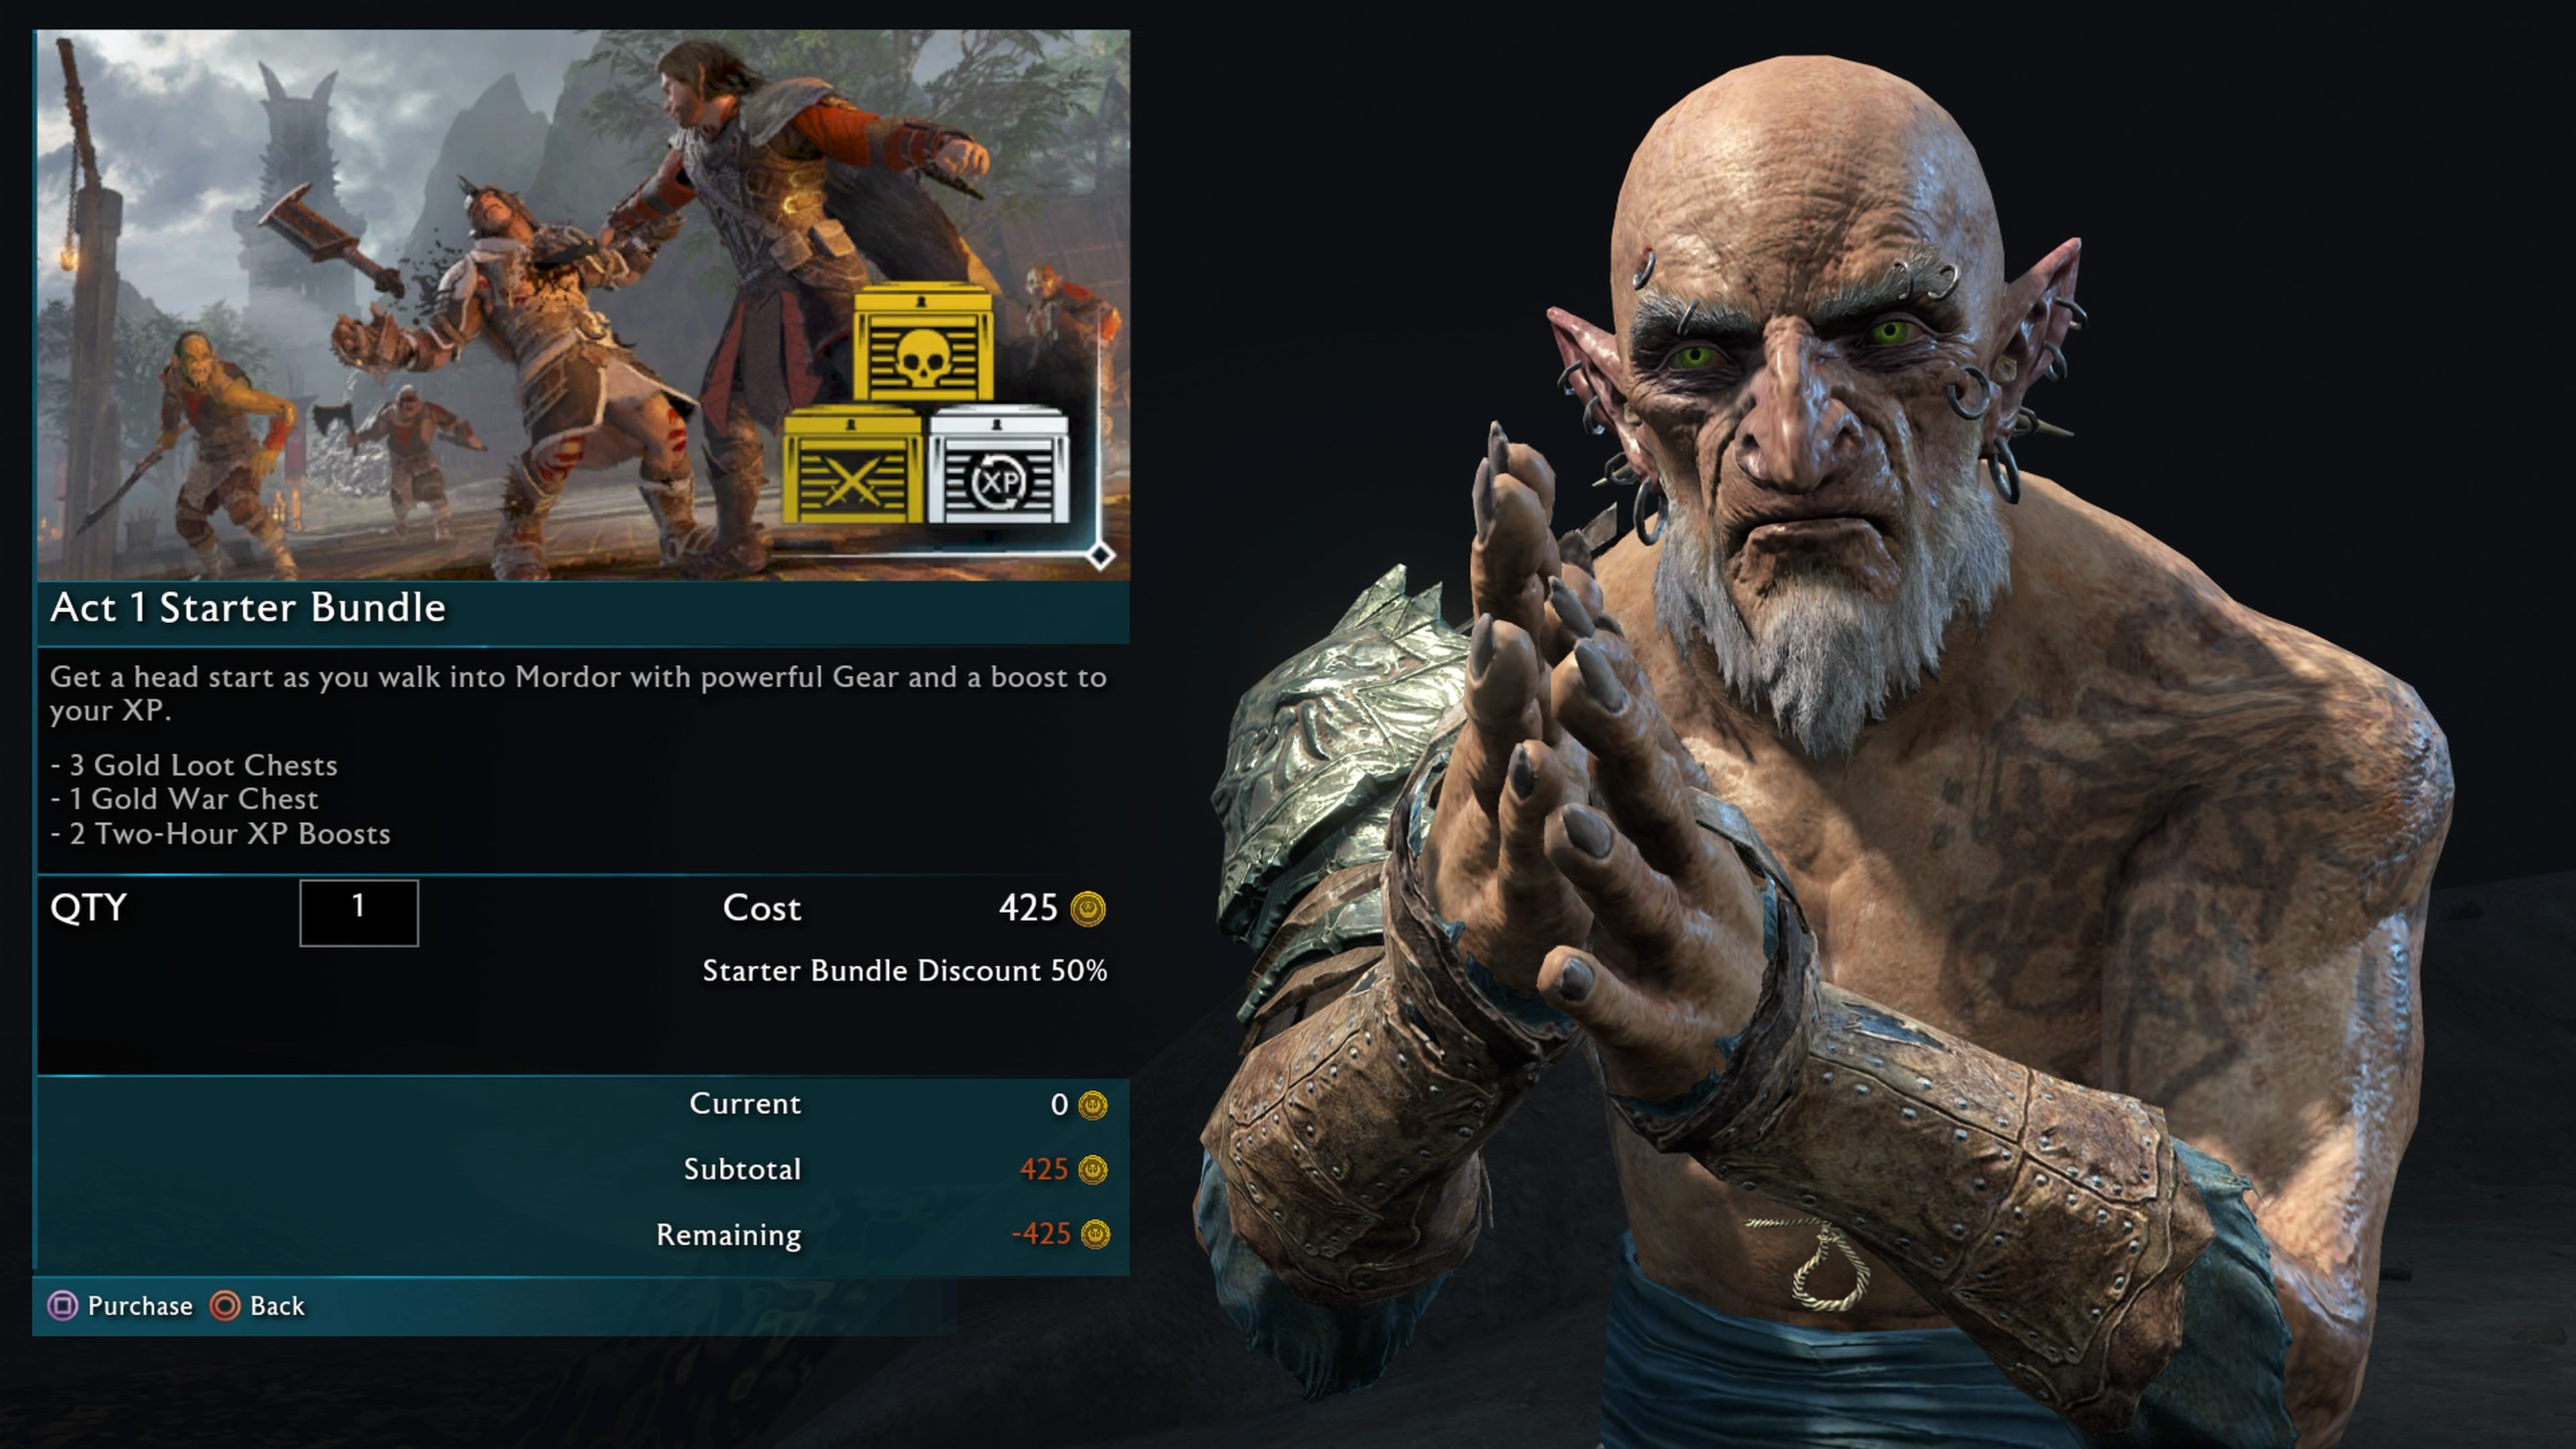 There was plenty of criticism of microtransactions in Shadow of War